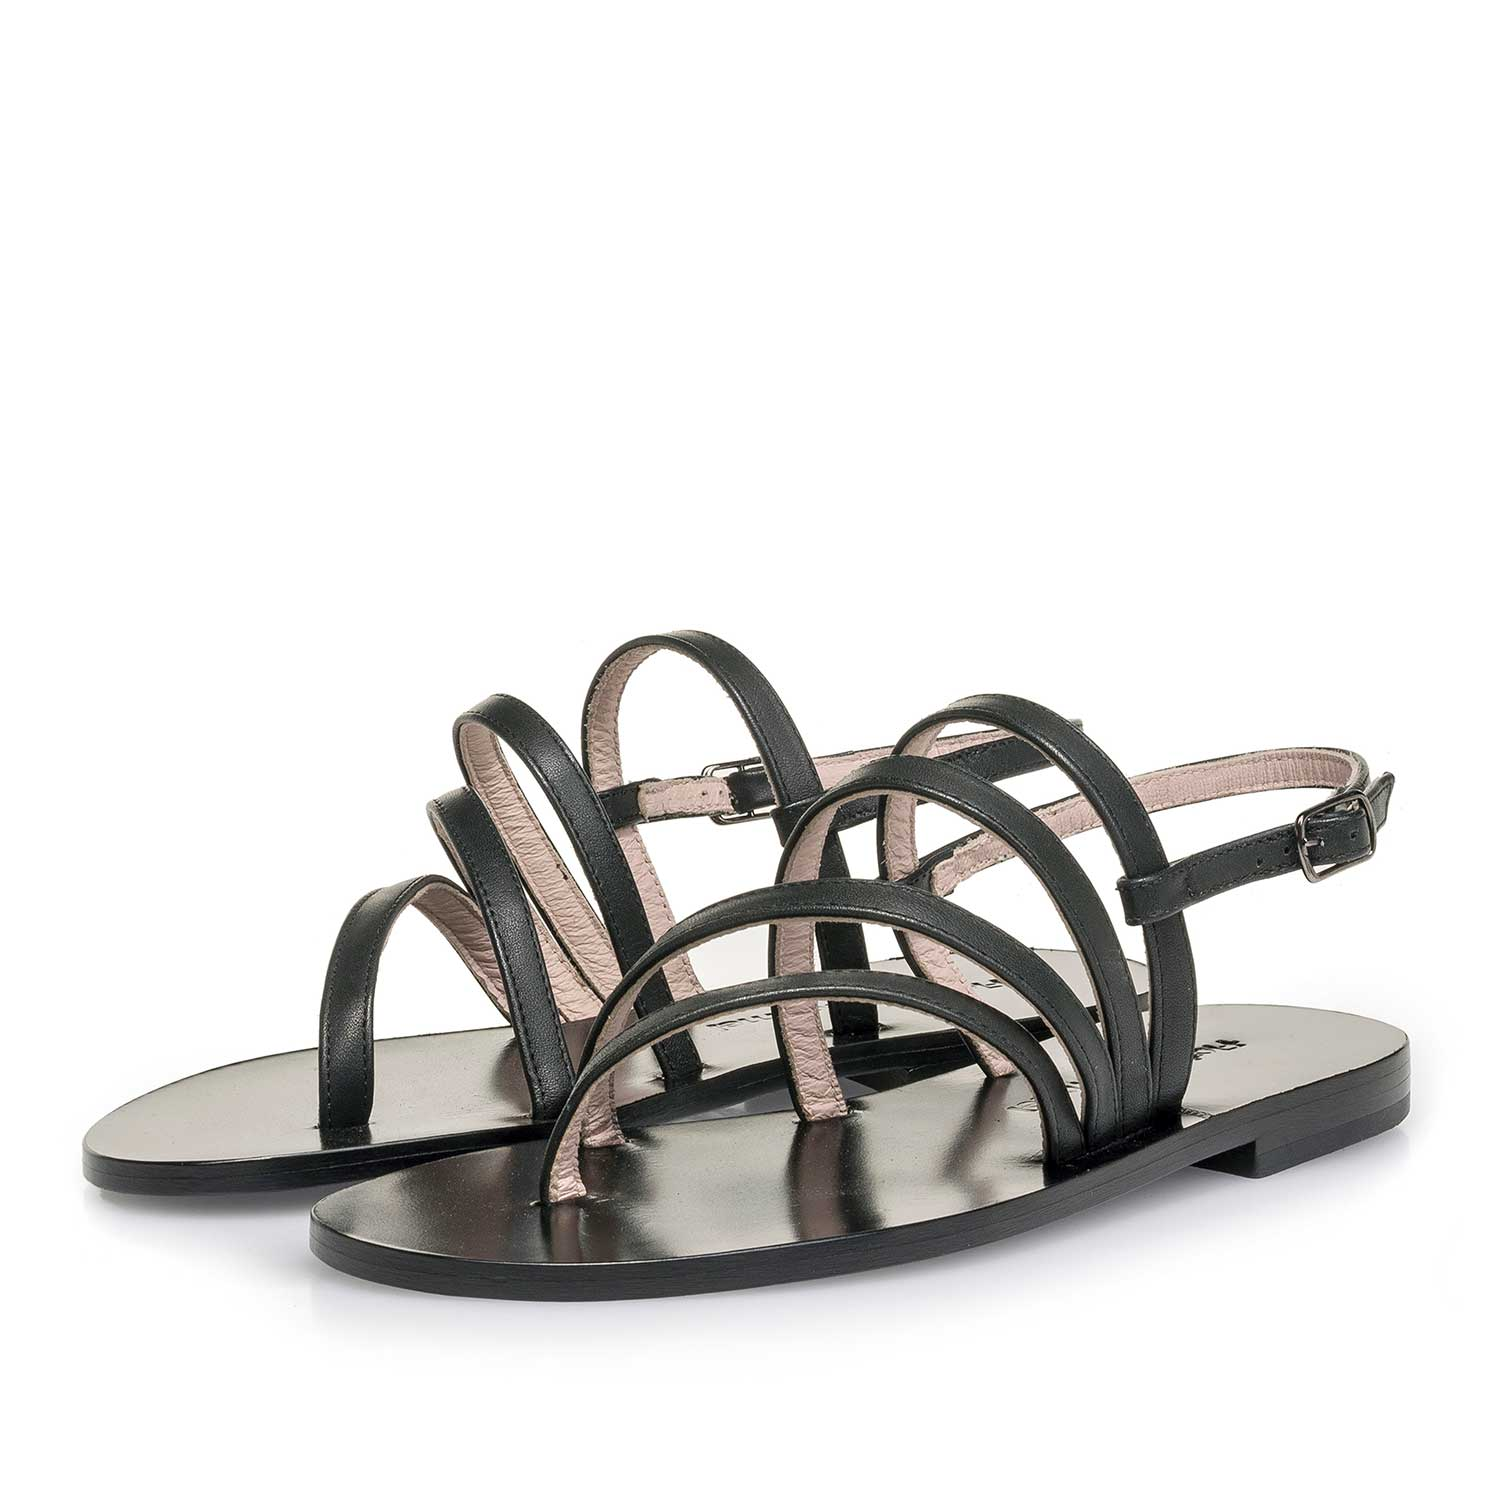 85905/00 - Black calf leather sandal